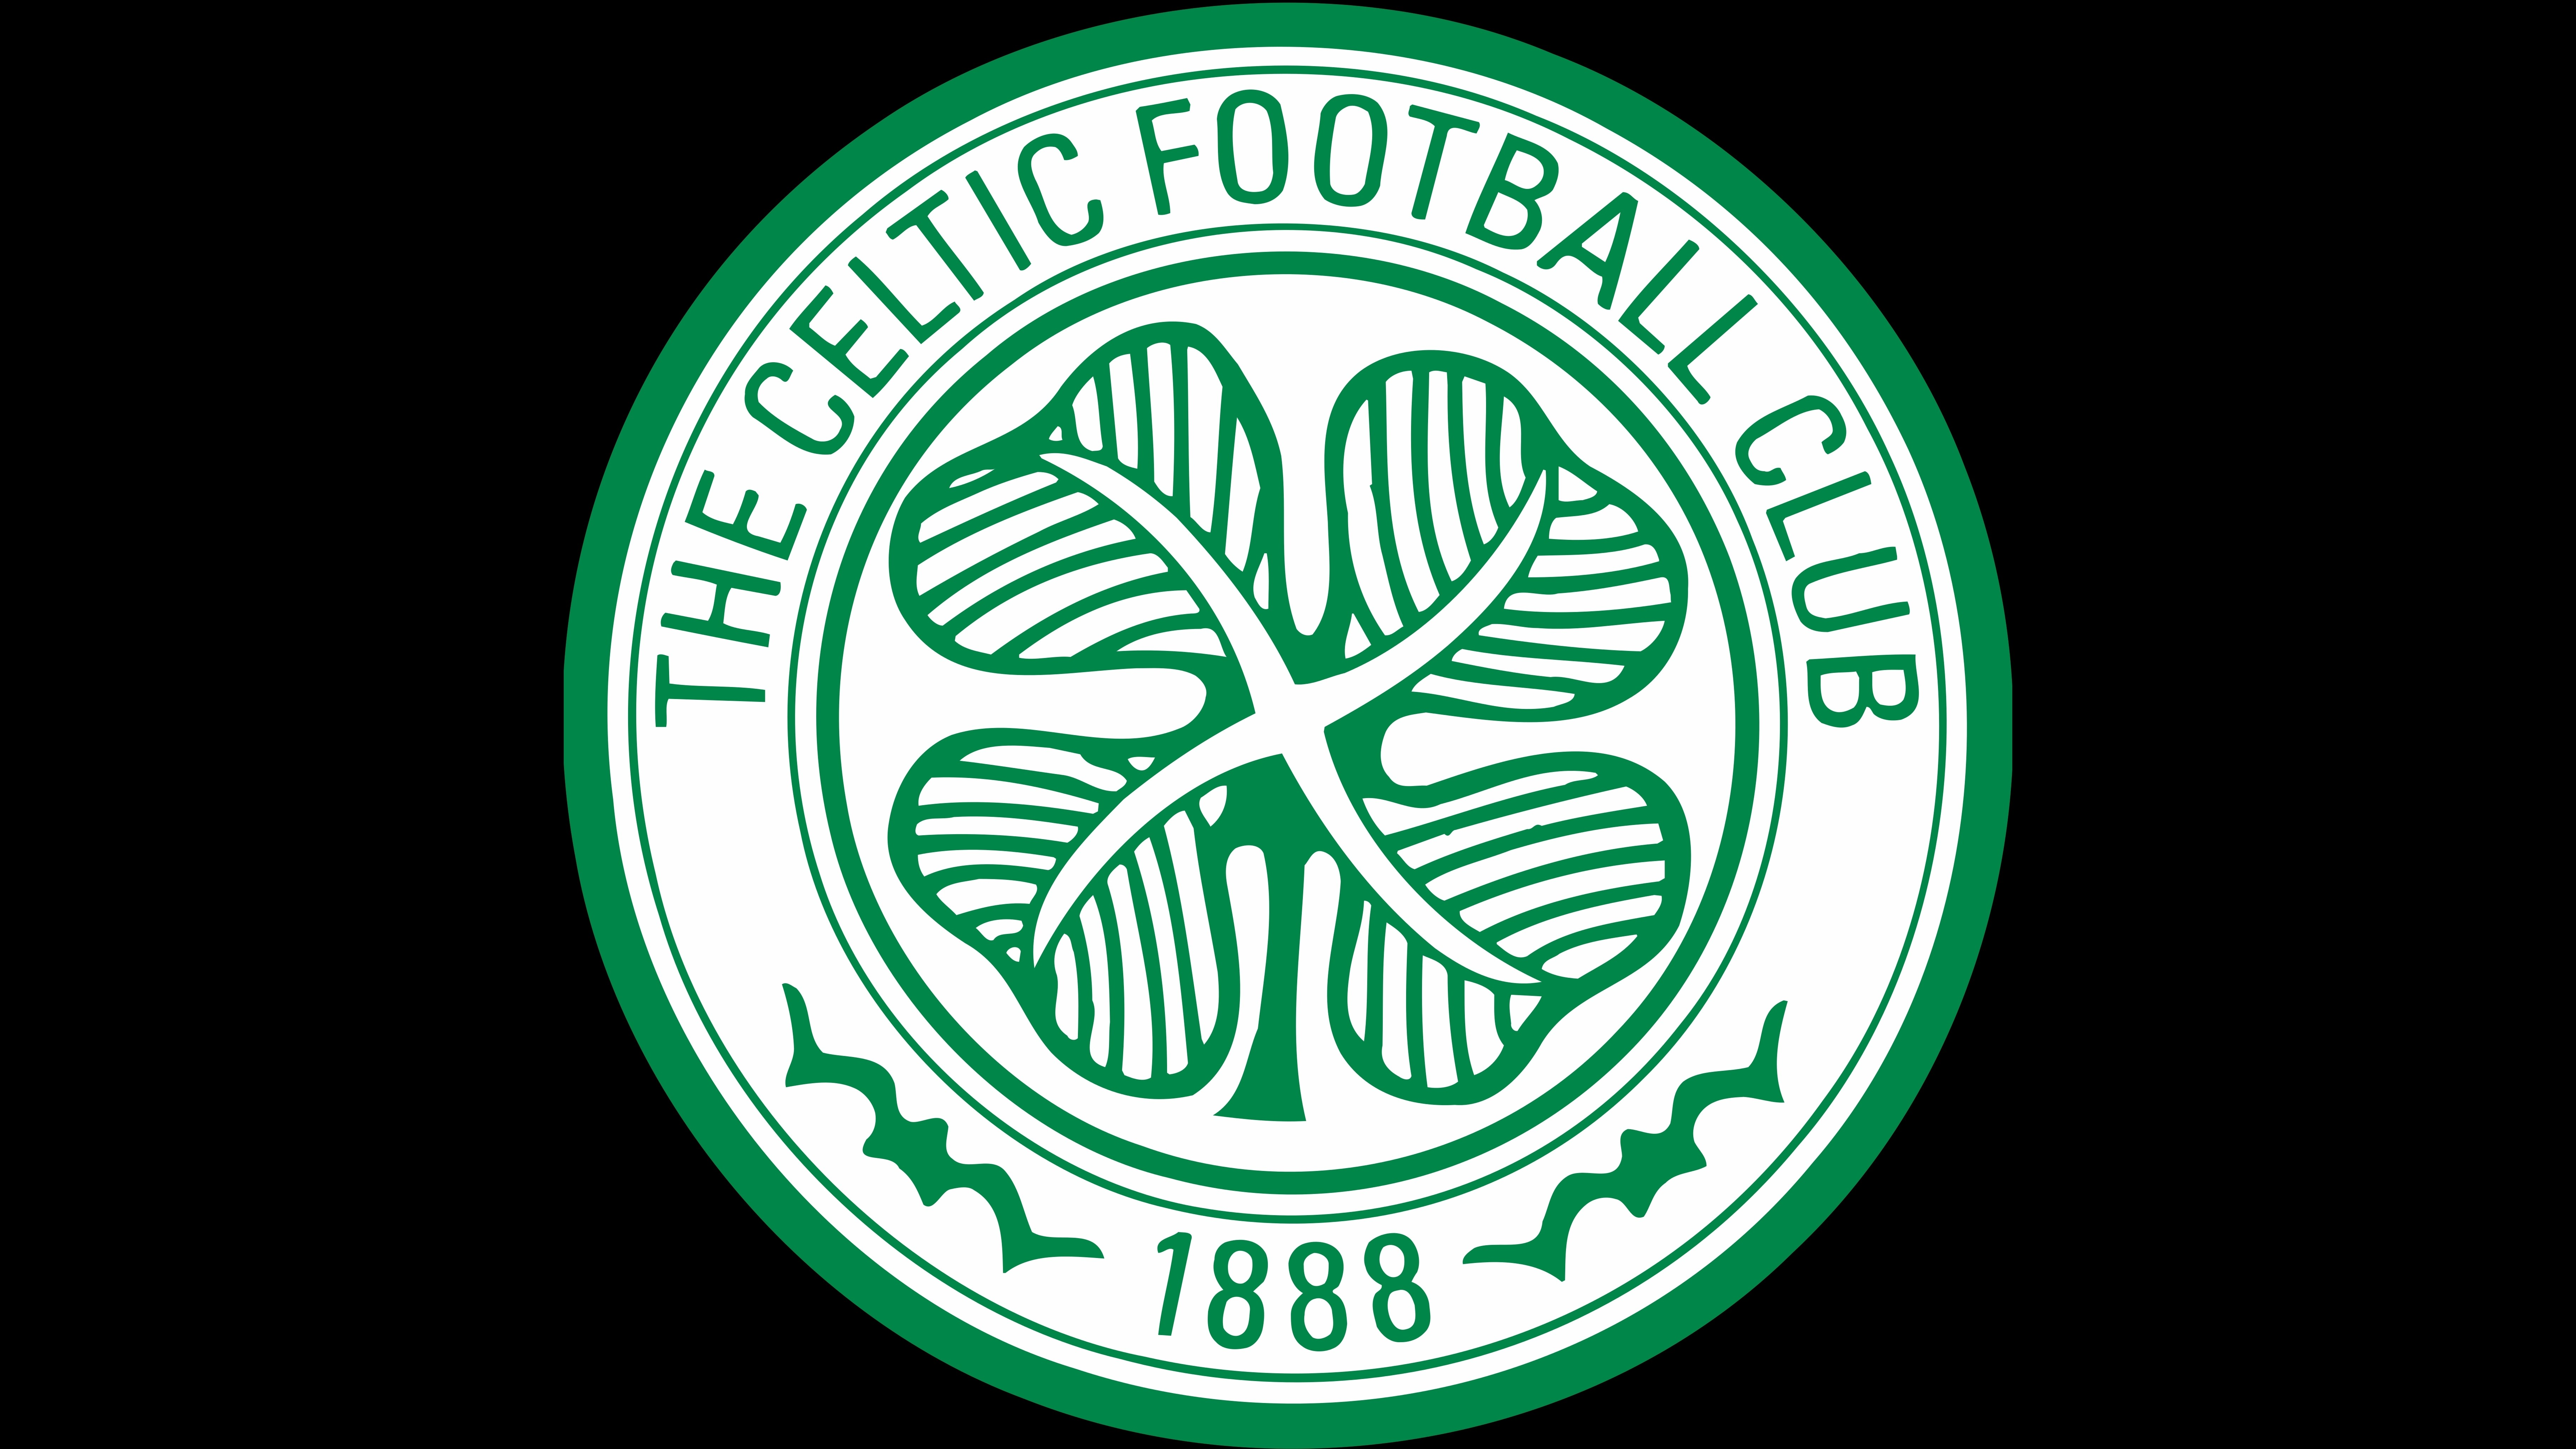 7284x4096 - Celtic F.C. Wallpapers 13